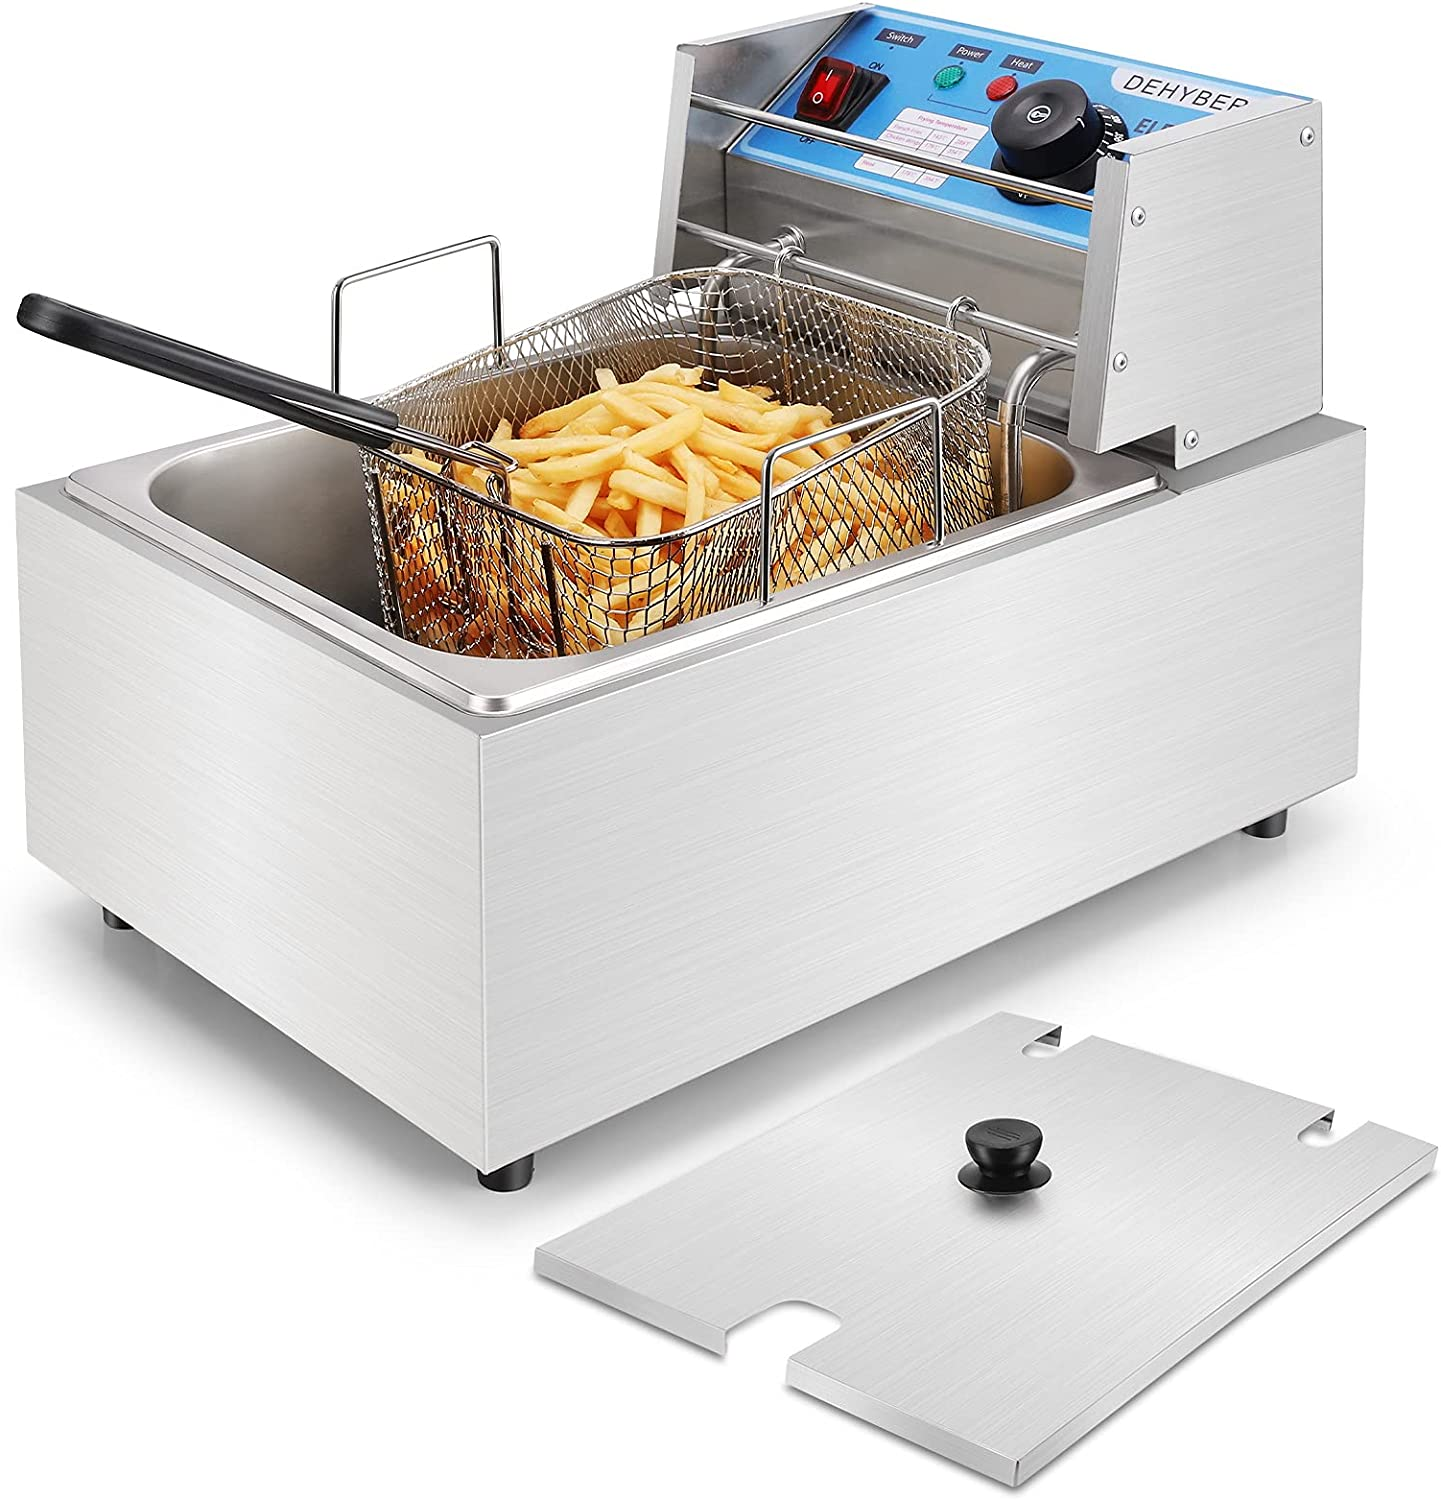 Dehyber 10.6QT/10L Deep Fryer with Basket,1800W Countertop Electric Deep Fryers with Removable Baskets,Handle and Temperature Limiter for Commercial and Home Use